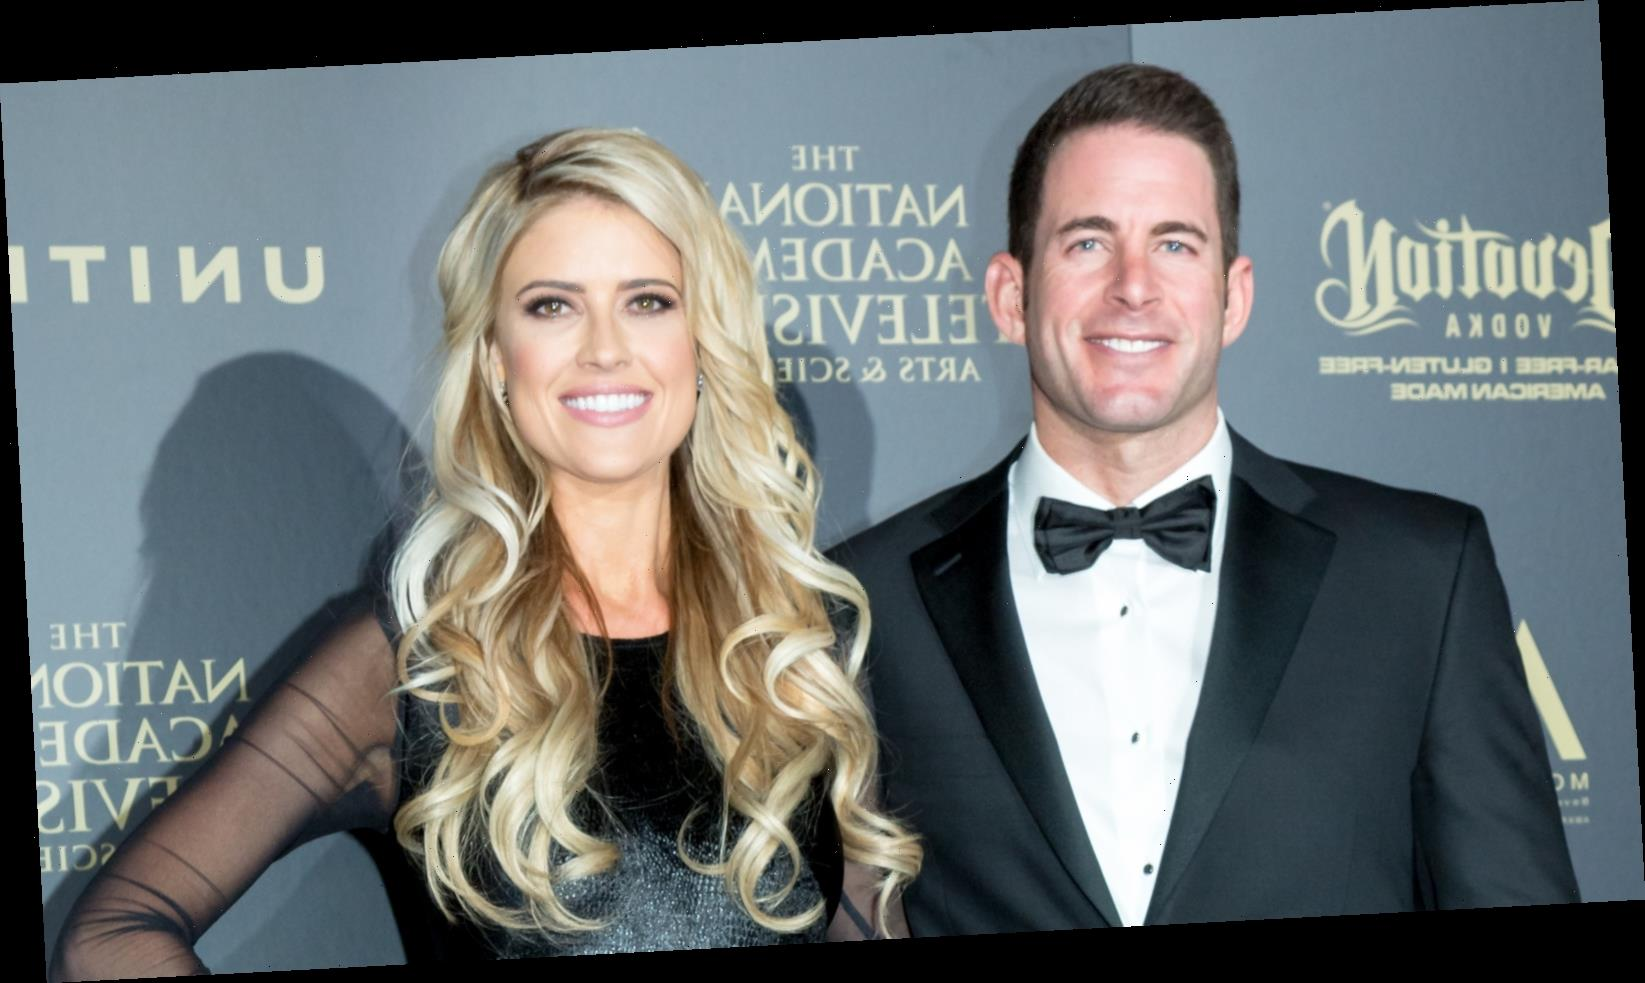 What You Never Knew About Christina Anstead And Tarek El Moussa's Relationship